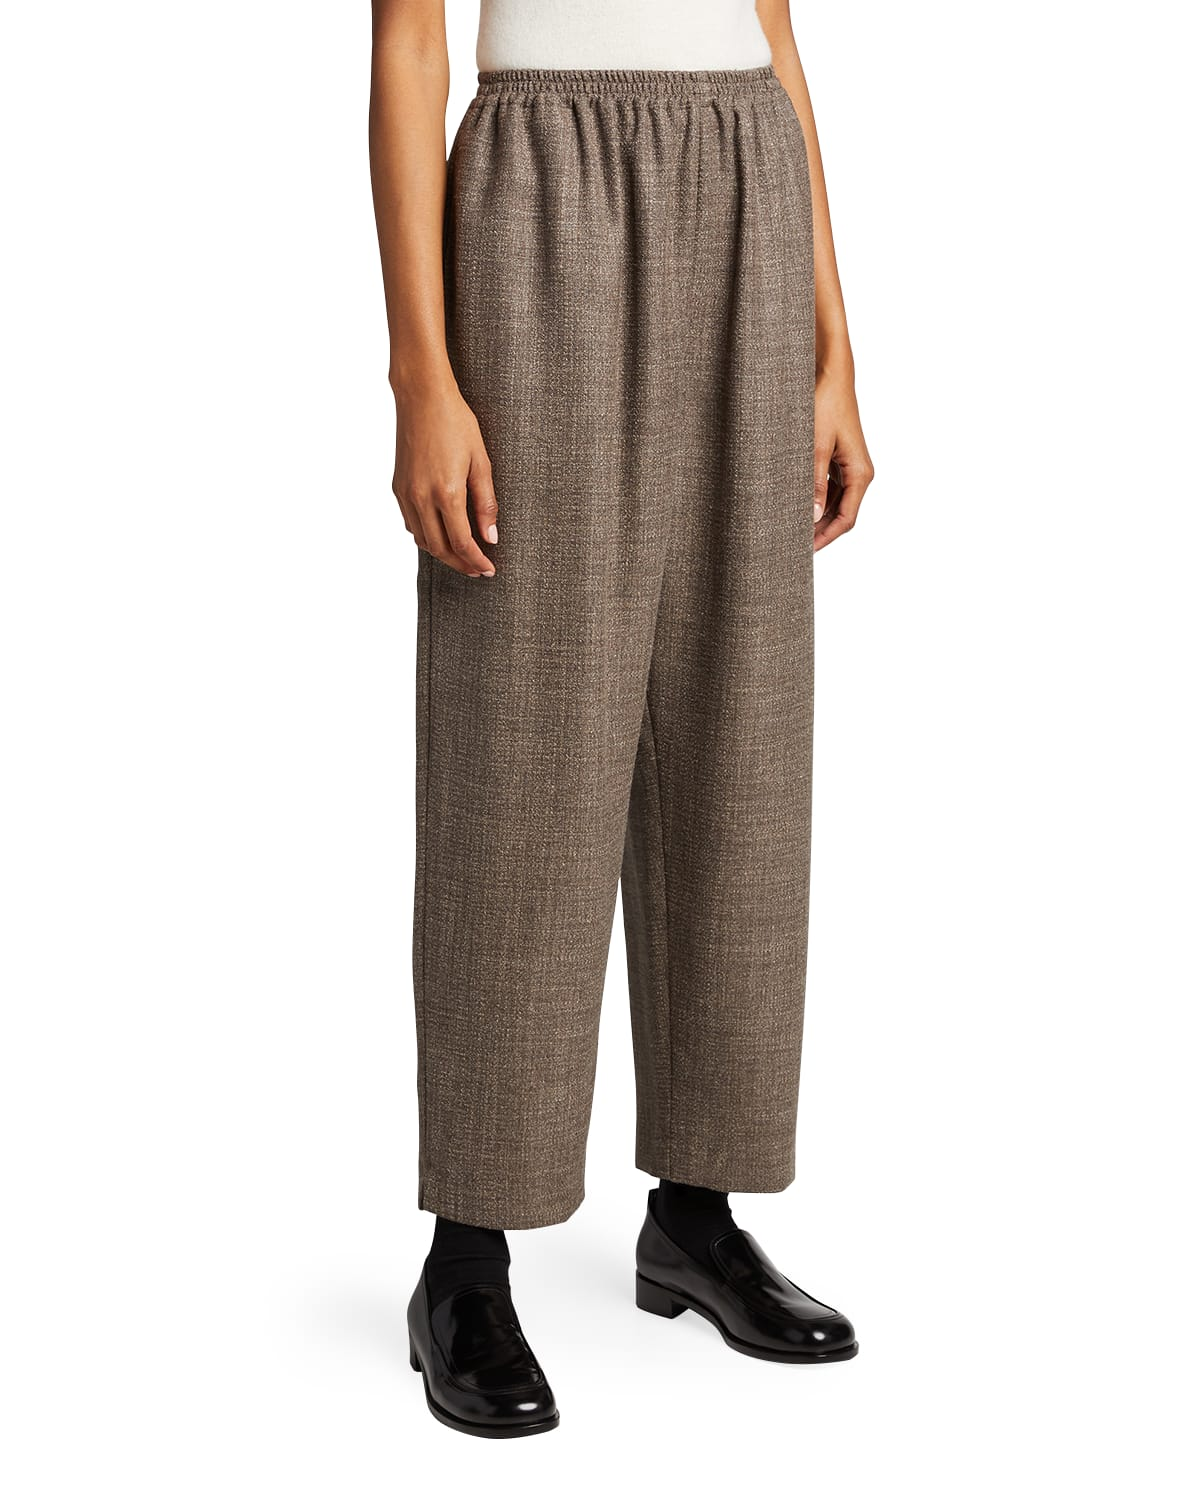 Wool-Blend Japanese Trousers